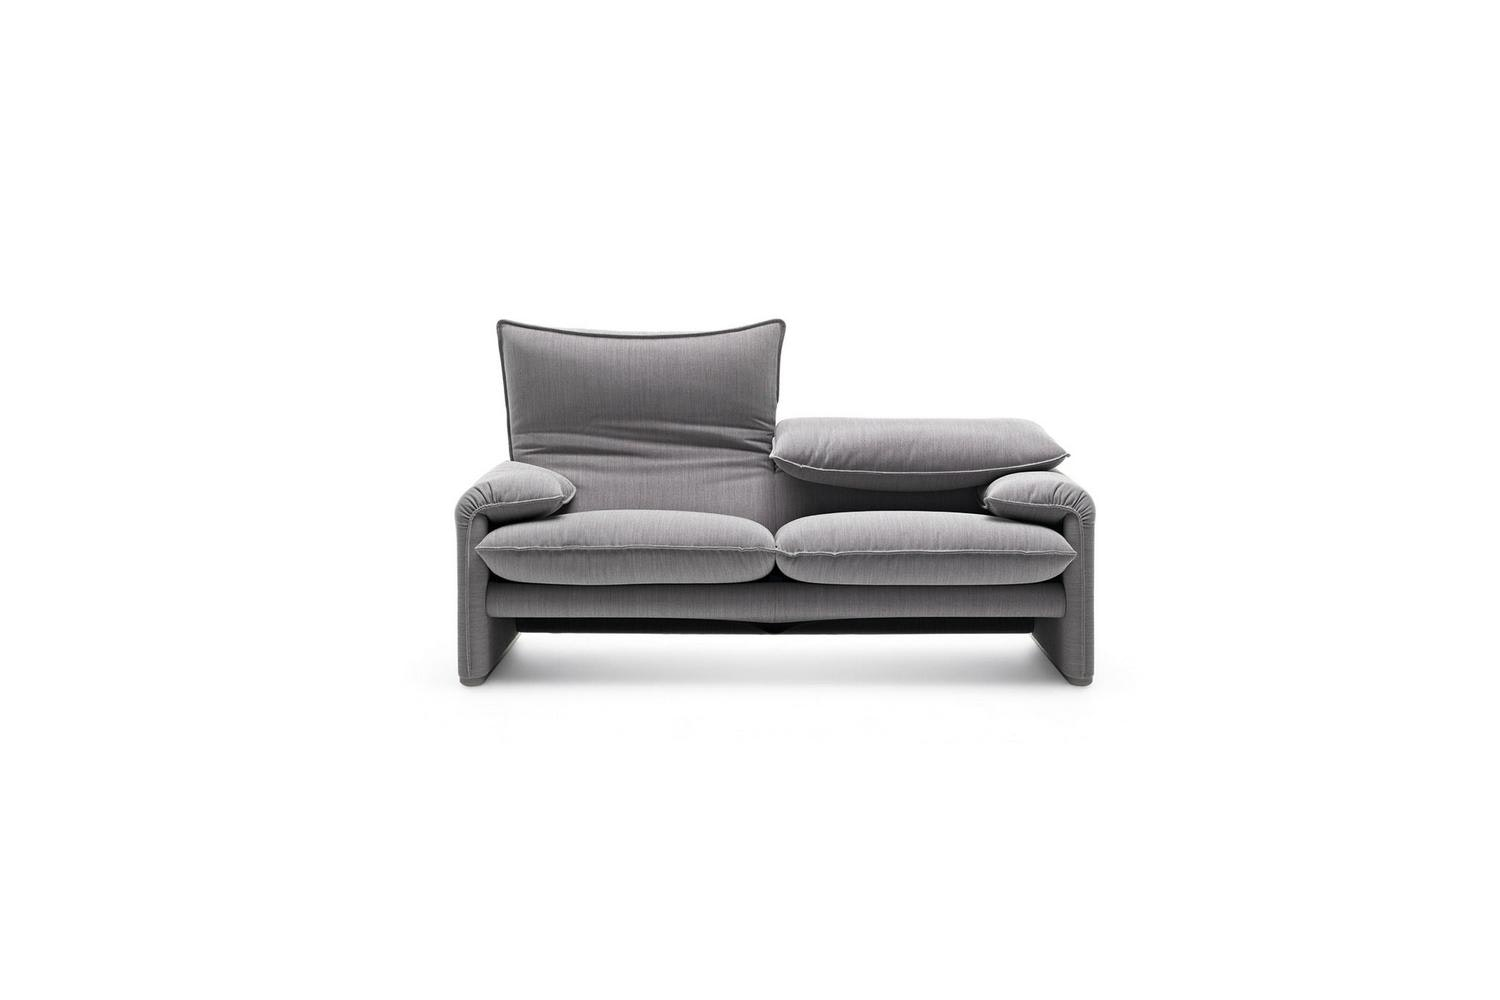 675 Maralunga 40 Sofa by Vico Magistretti for Cassina